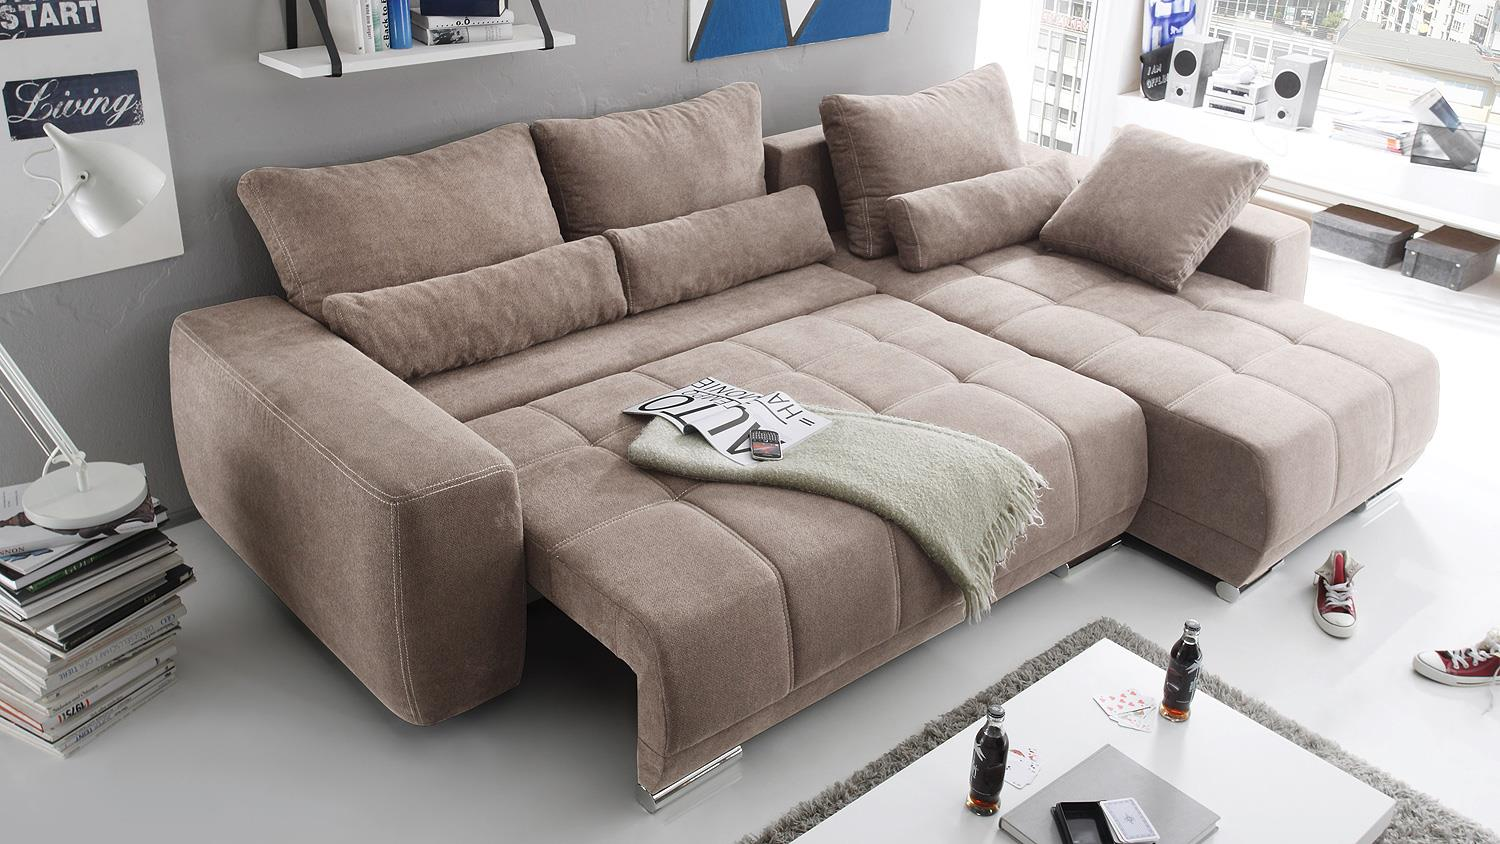 Eckcouch taupe  Eckcouch Taupe: Mendini eck sofa r?cami?re rechts soft taupe ...